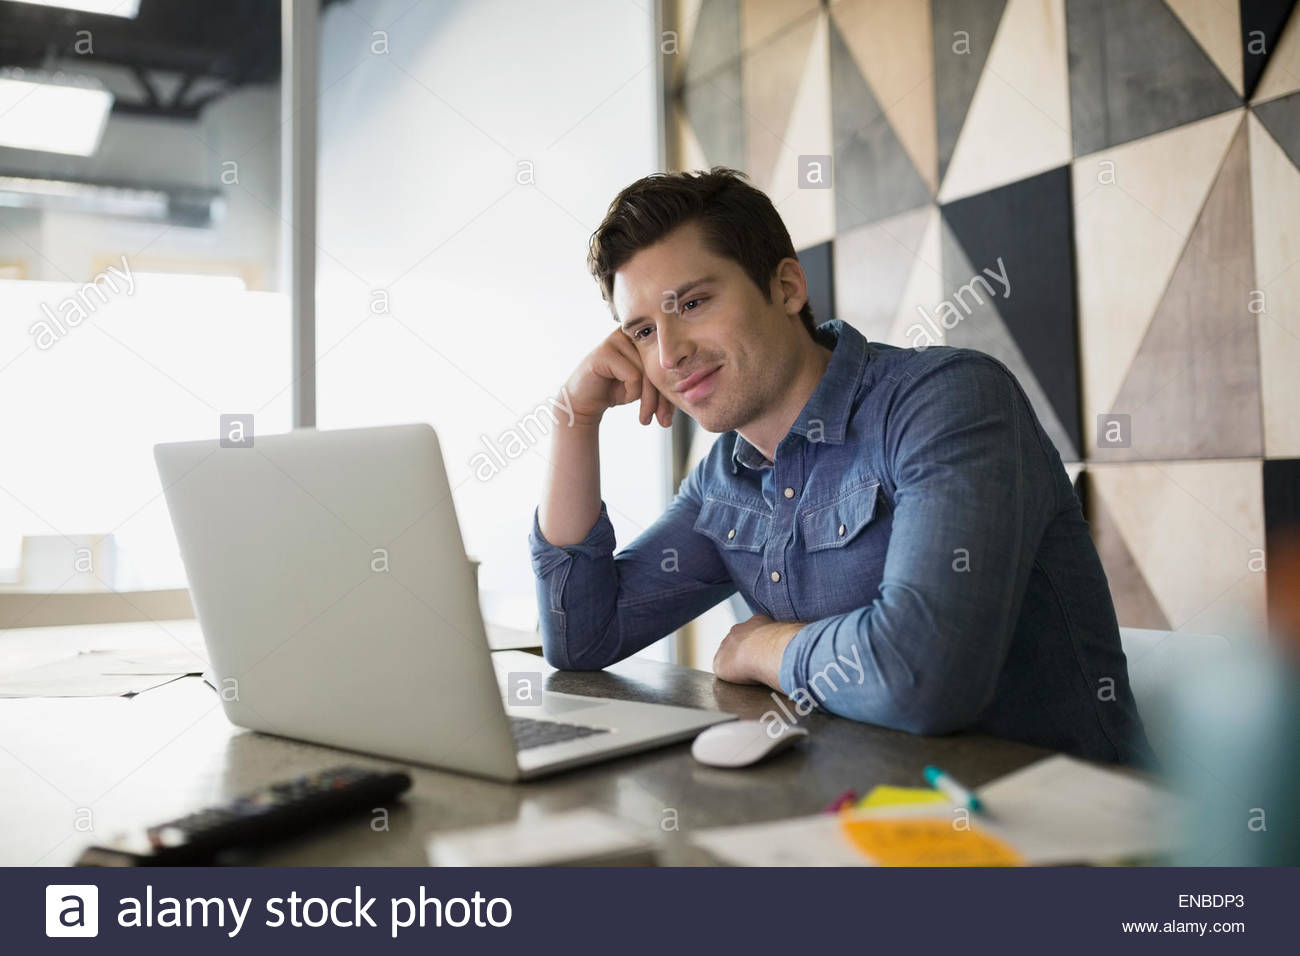 Casual businessman working at laptop in conference room - Stock Image